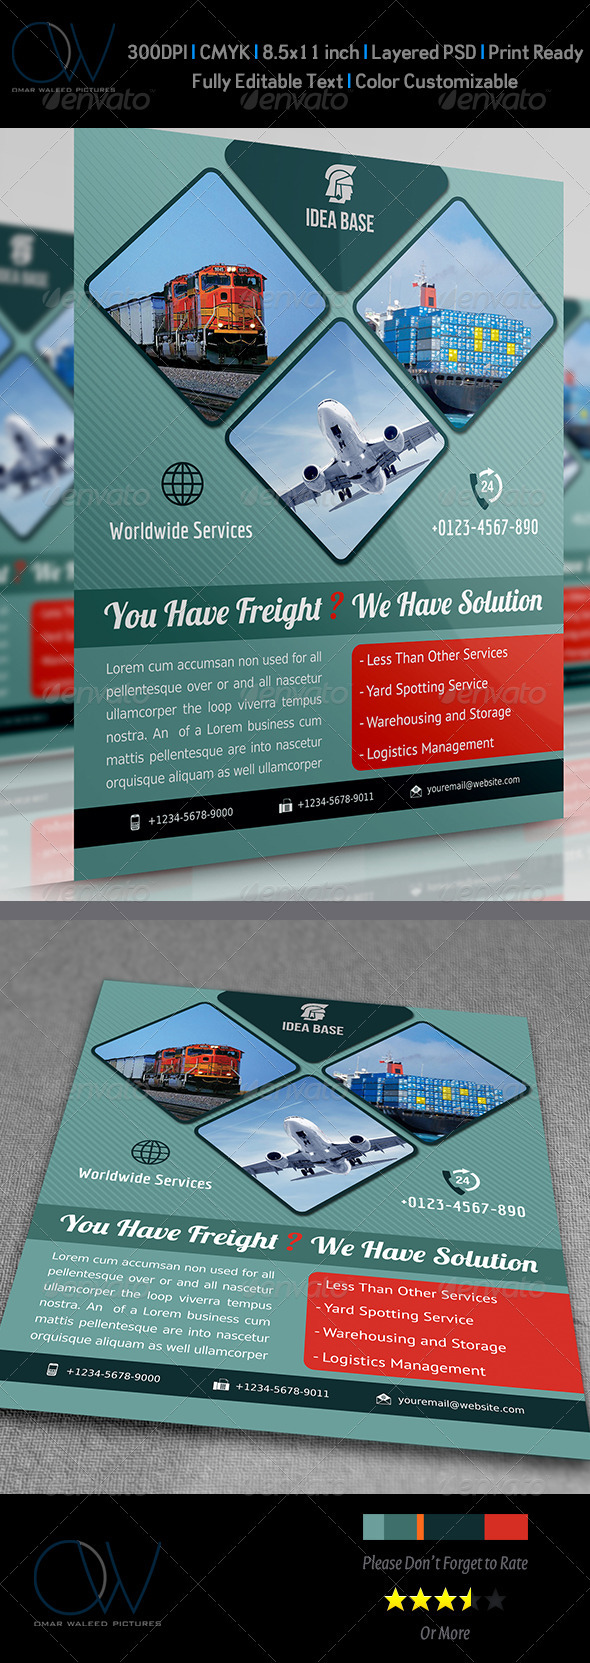 GraphicRiver Freight Shipment Services Flyer 3825230